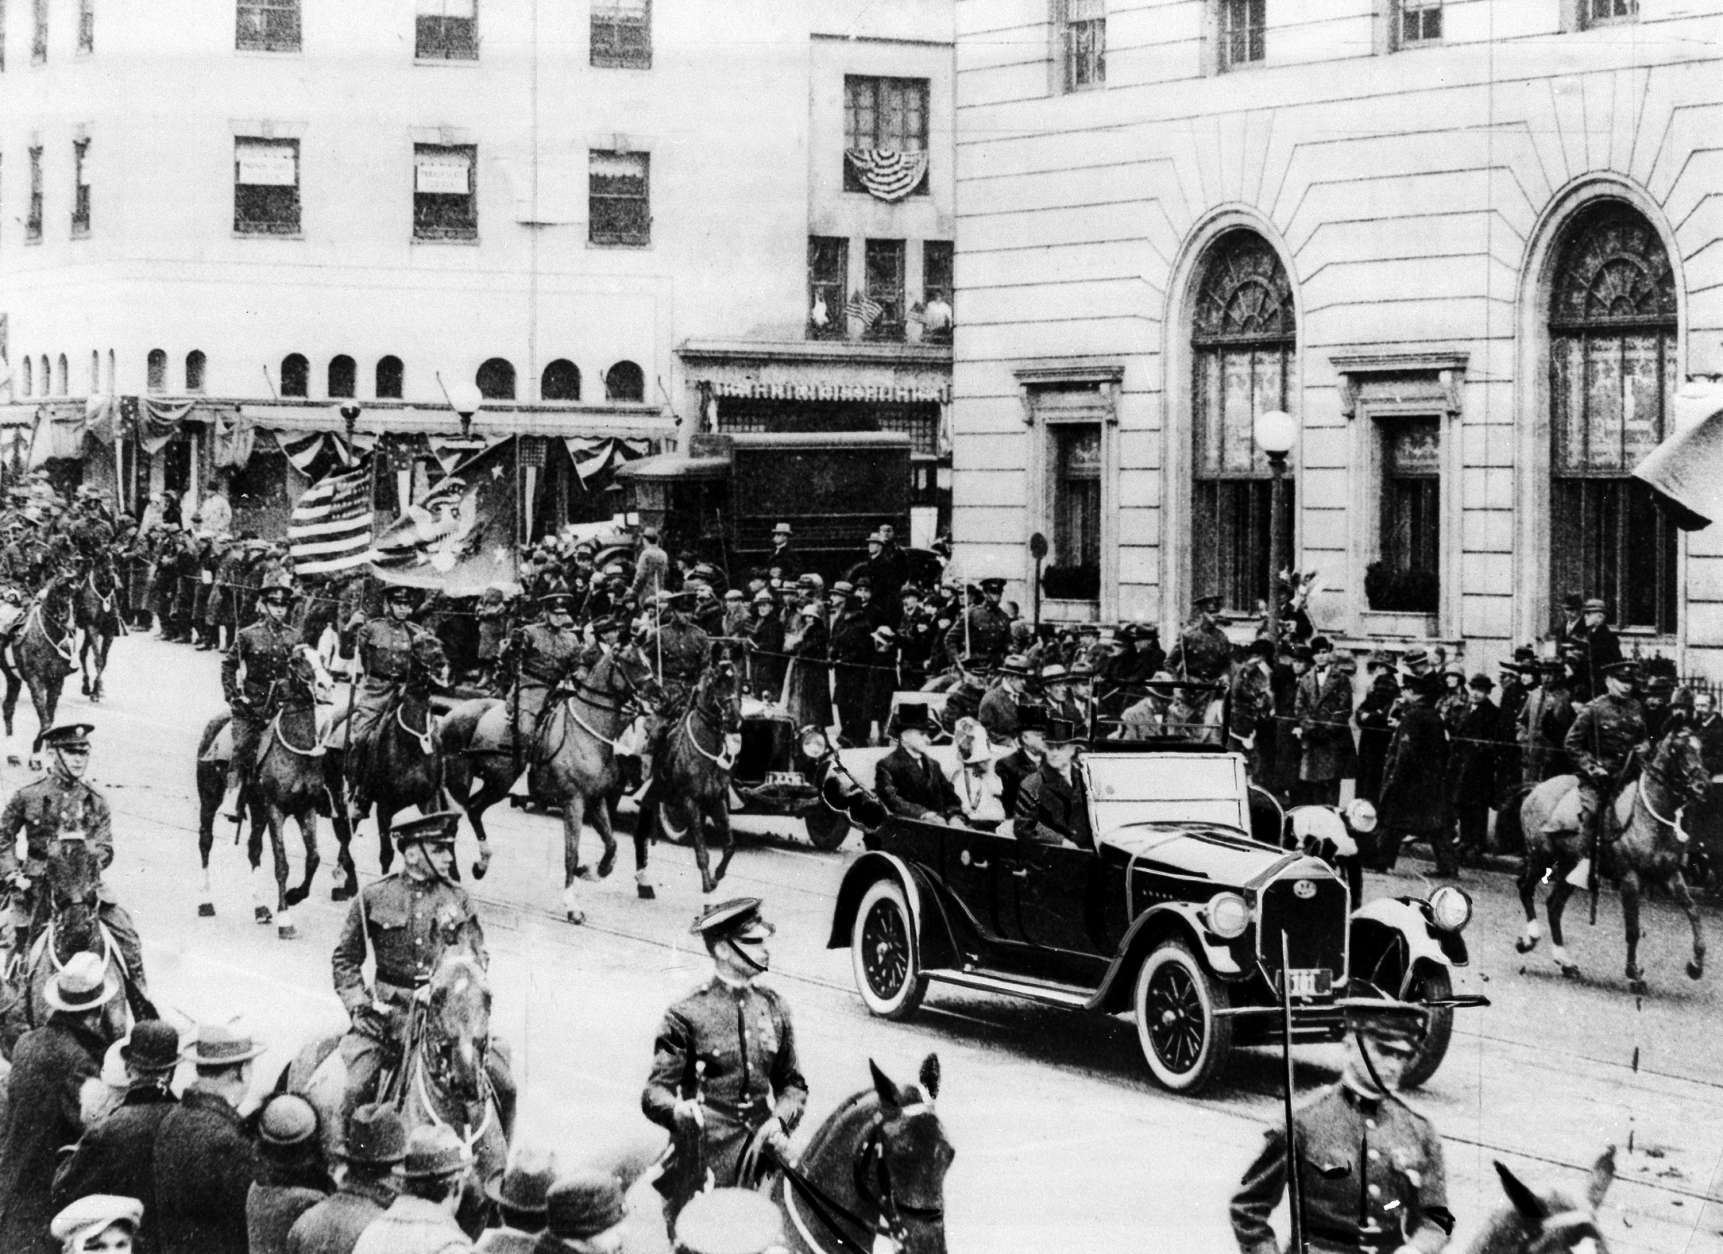 President Calvin Coolidge rides in an open car at the head of the inaugural parade with his wife Grace and Chief Justice Wiliam H. Taft in Washington, D.C., on March 4, 1925.  Coolidge was sworn in as the 30th president of the United States.  (AP Photo)